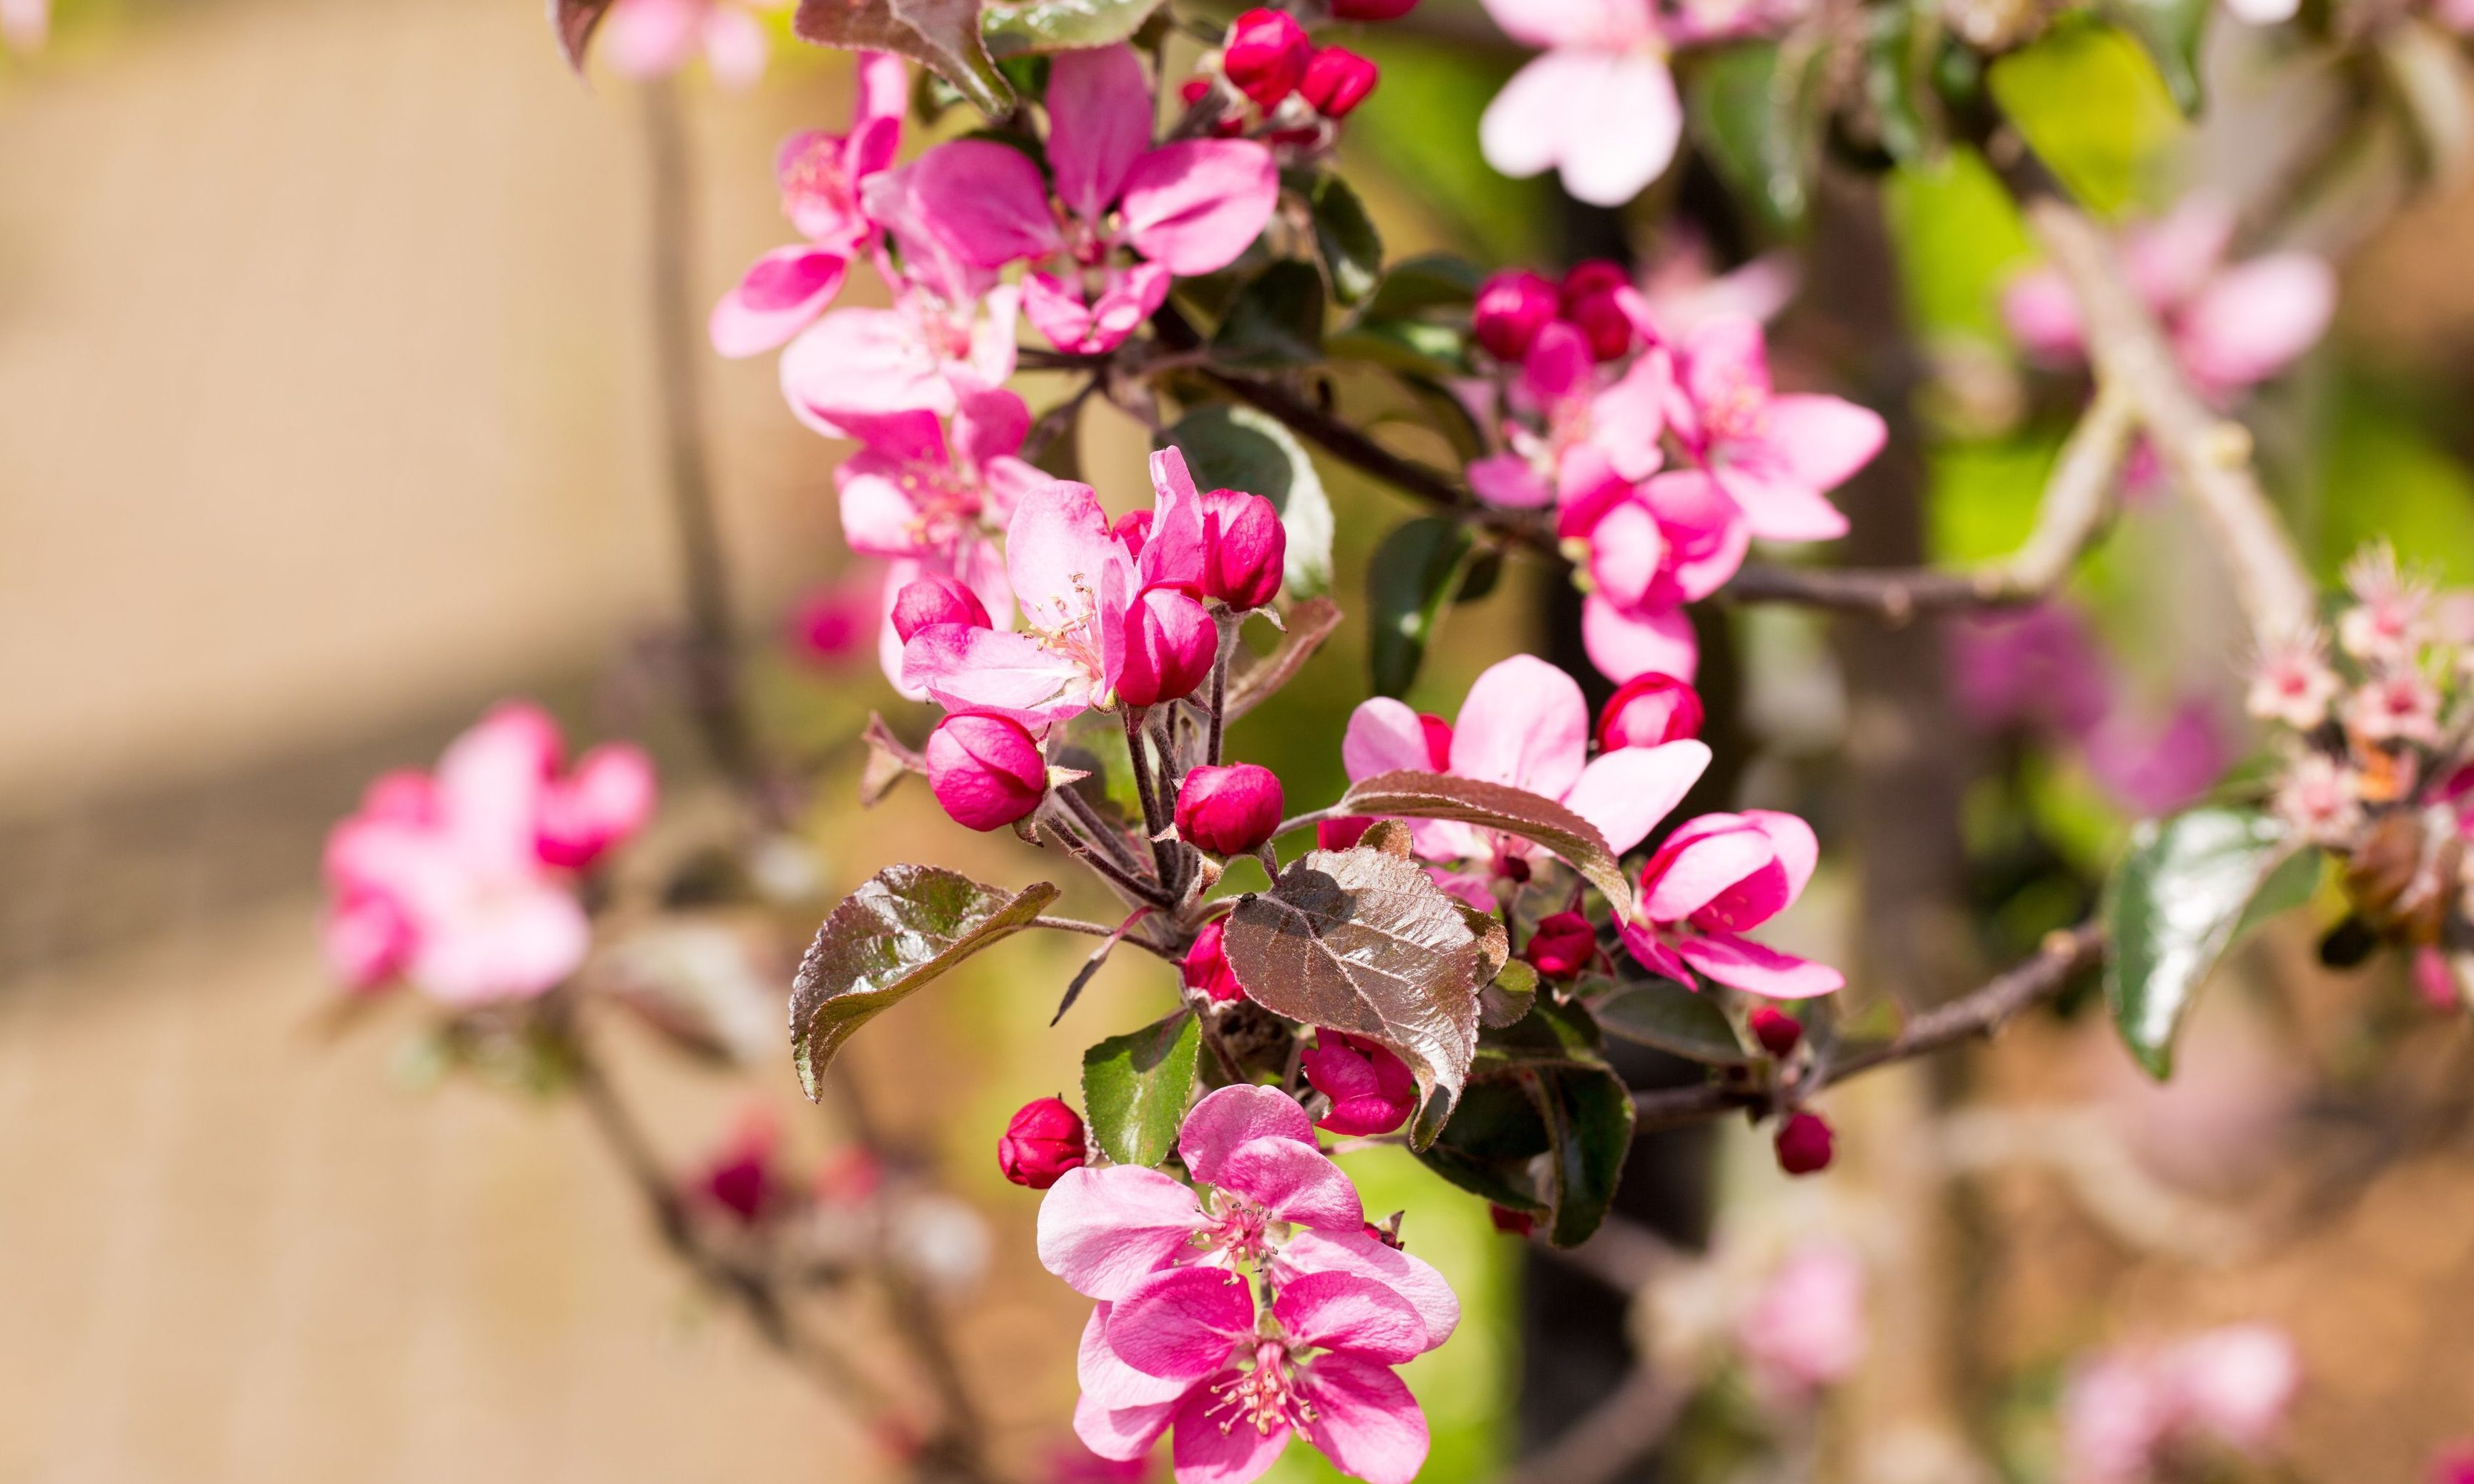 A crab apple blossoming in Spring.